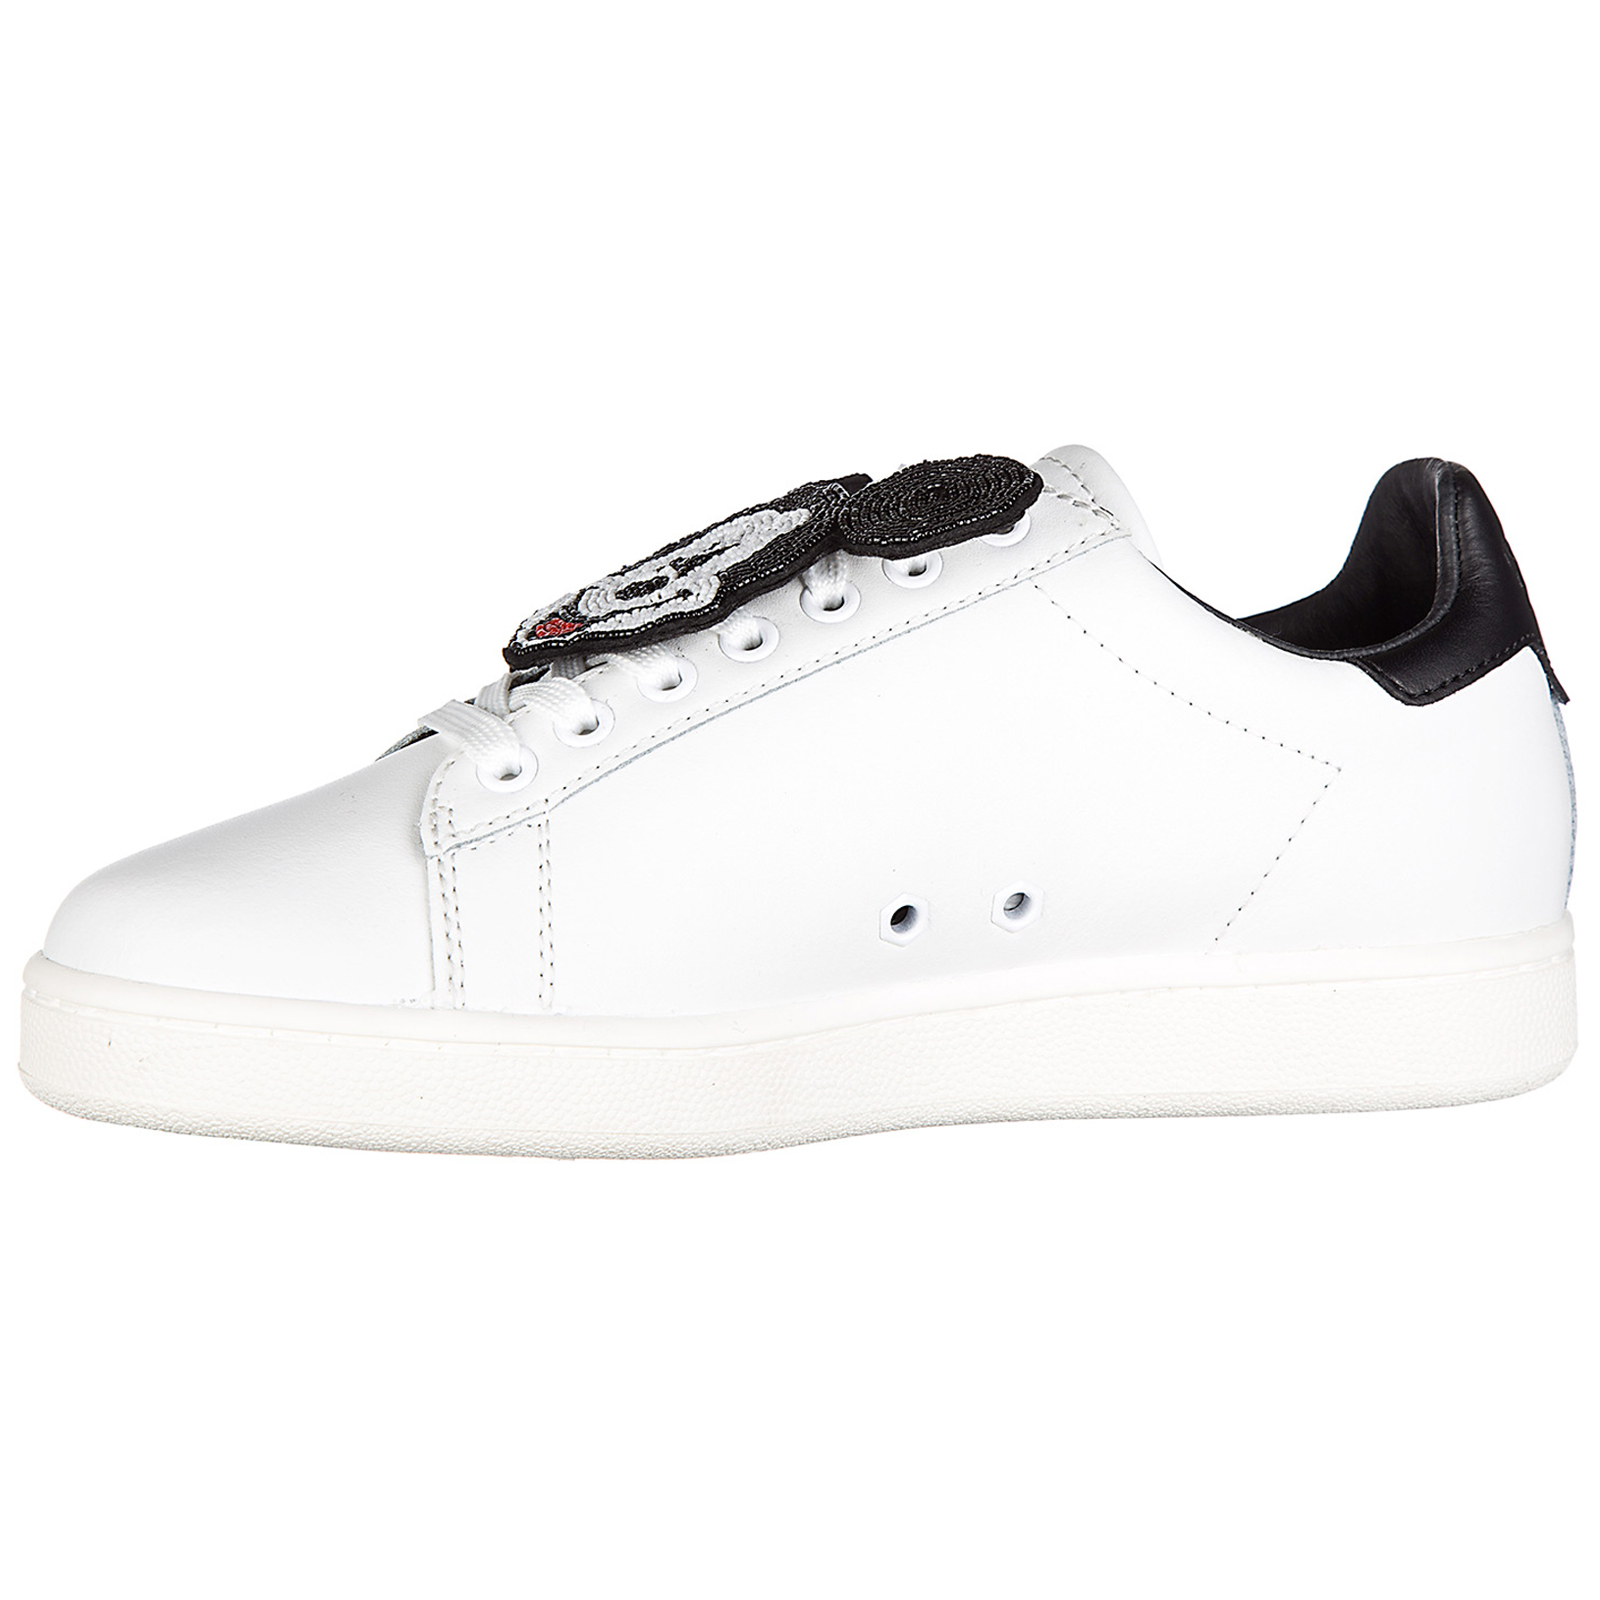 Women's shoes leather trainers sneakers action